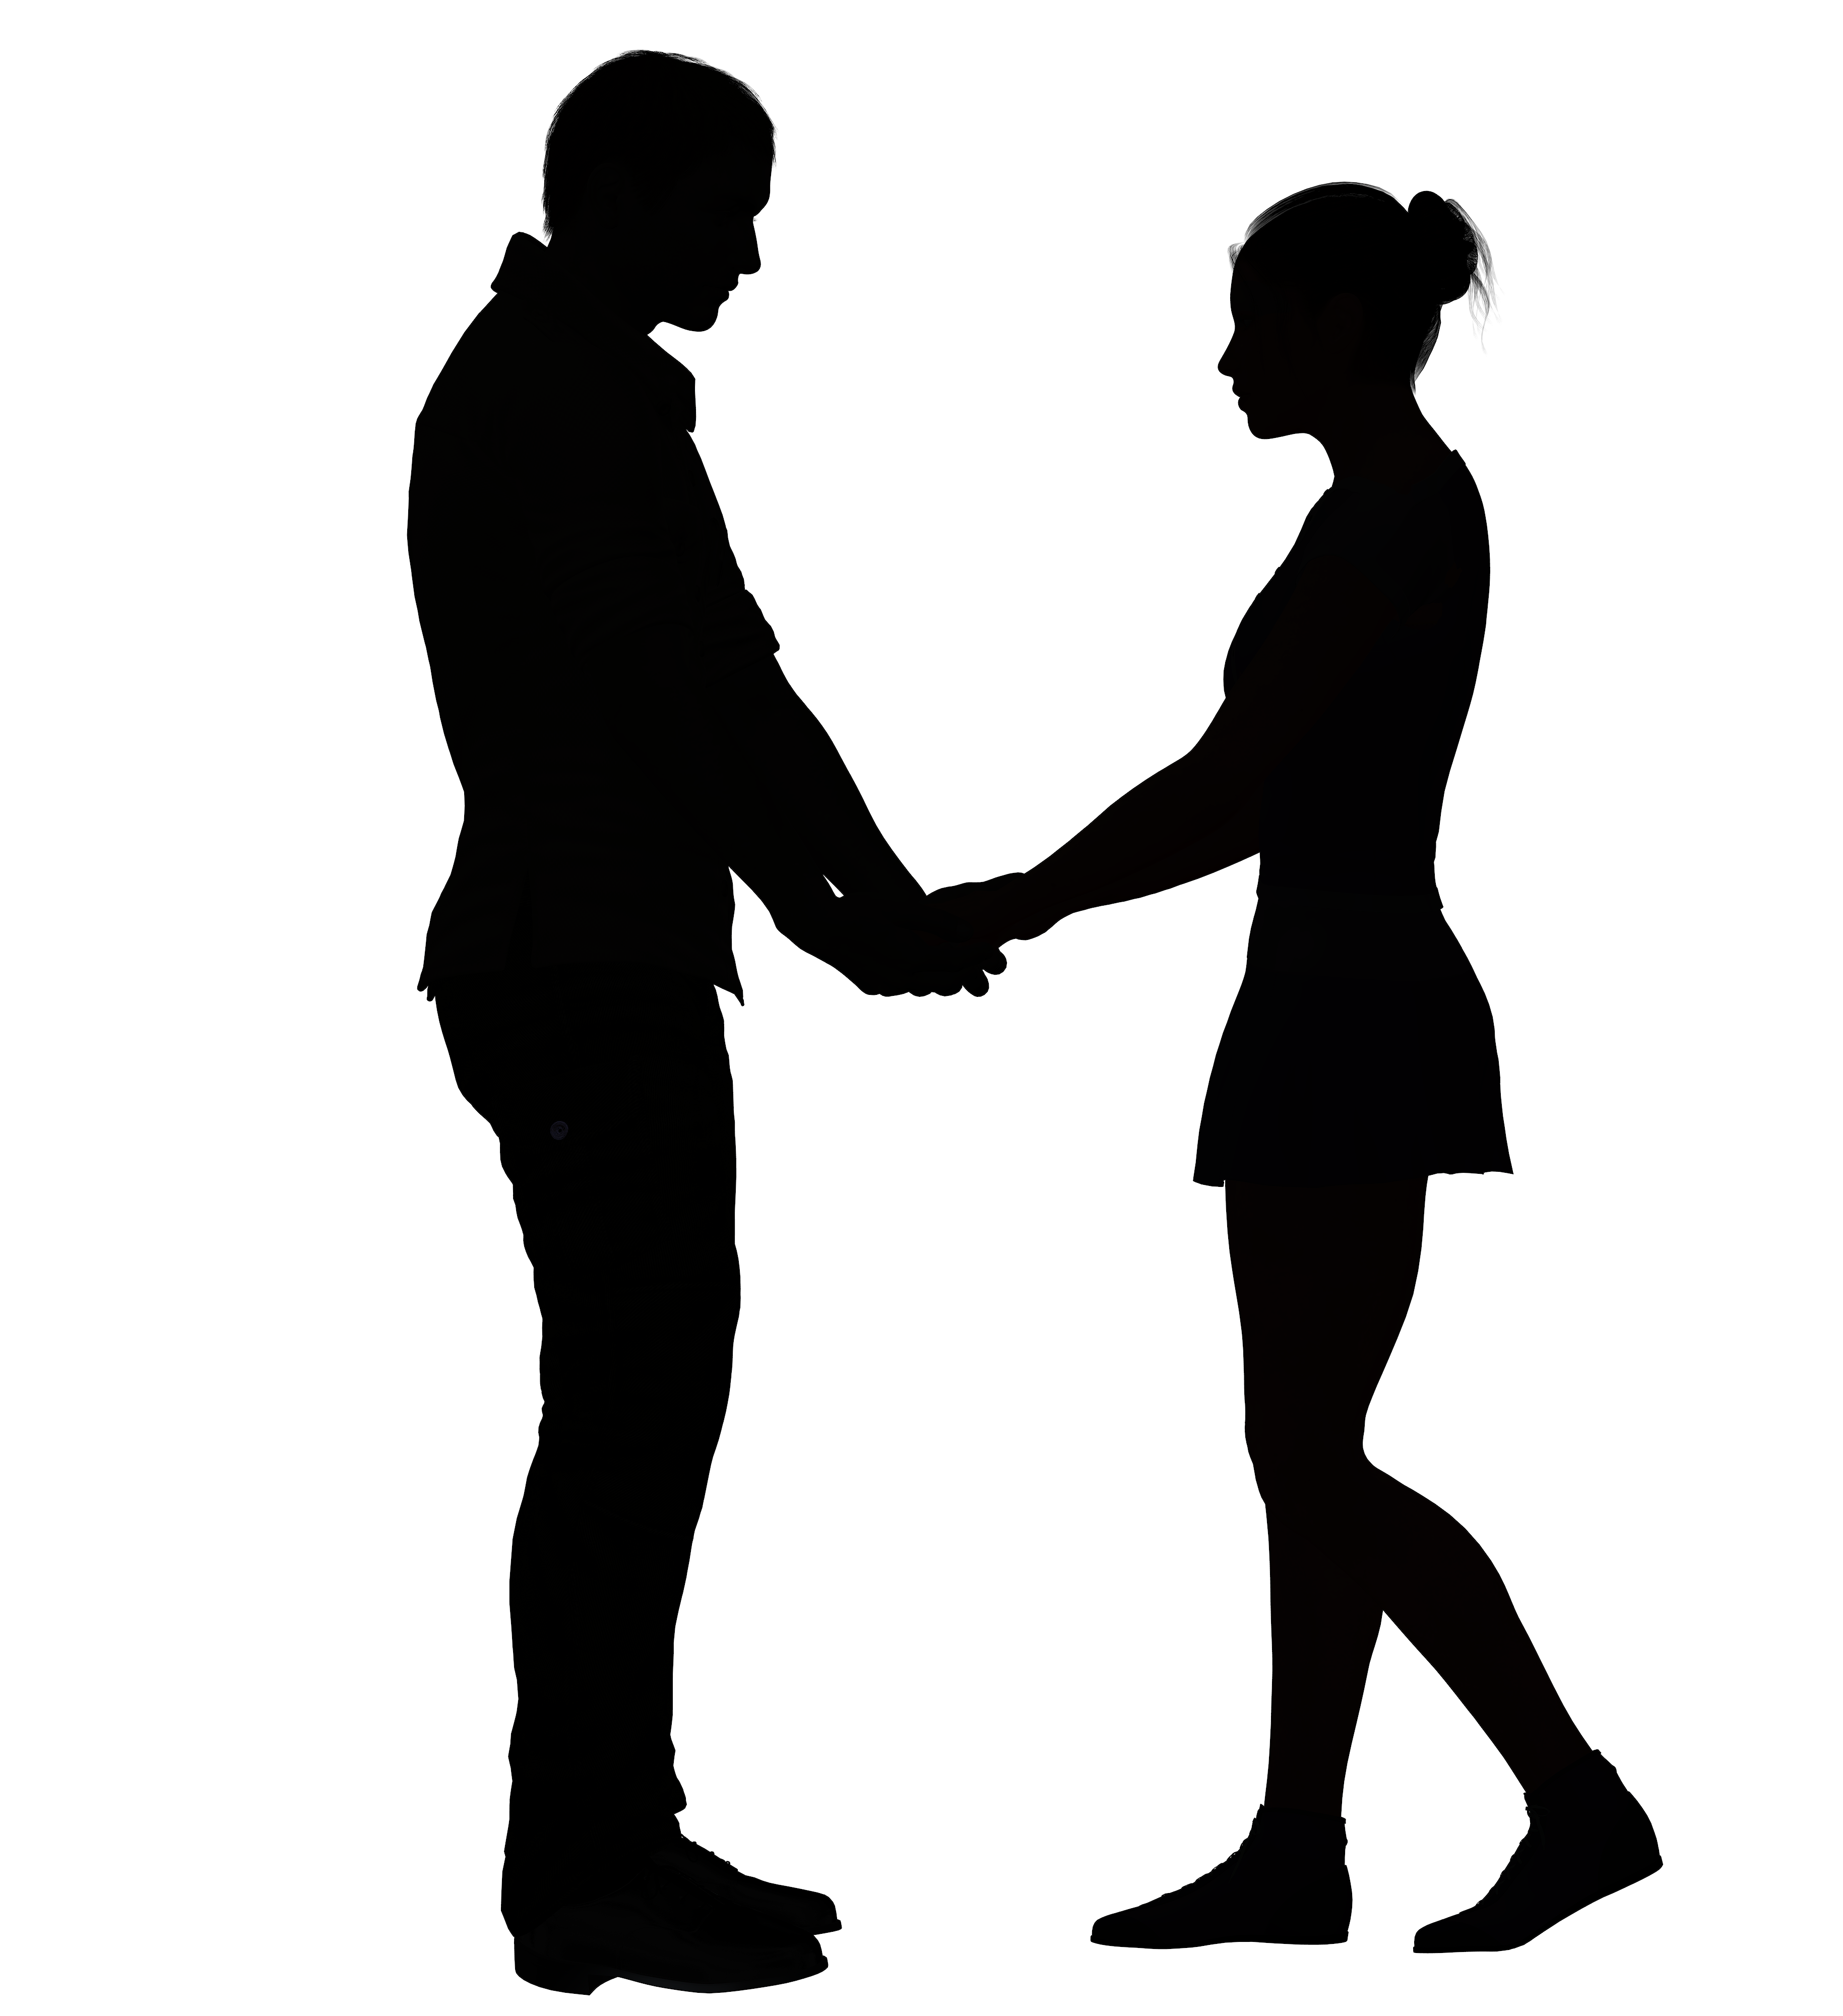 People in a heart holding hands clipart free download Silhouette Love Clip art - broken heart png download - 3657 ... free download